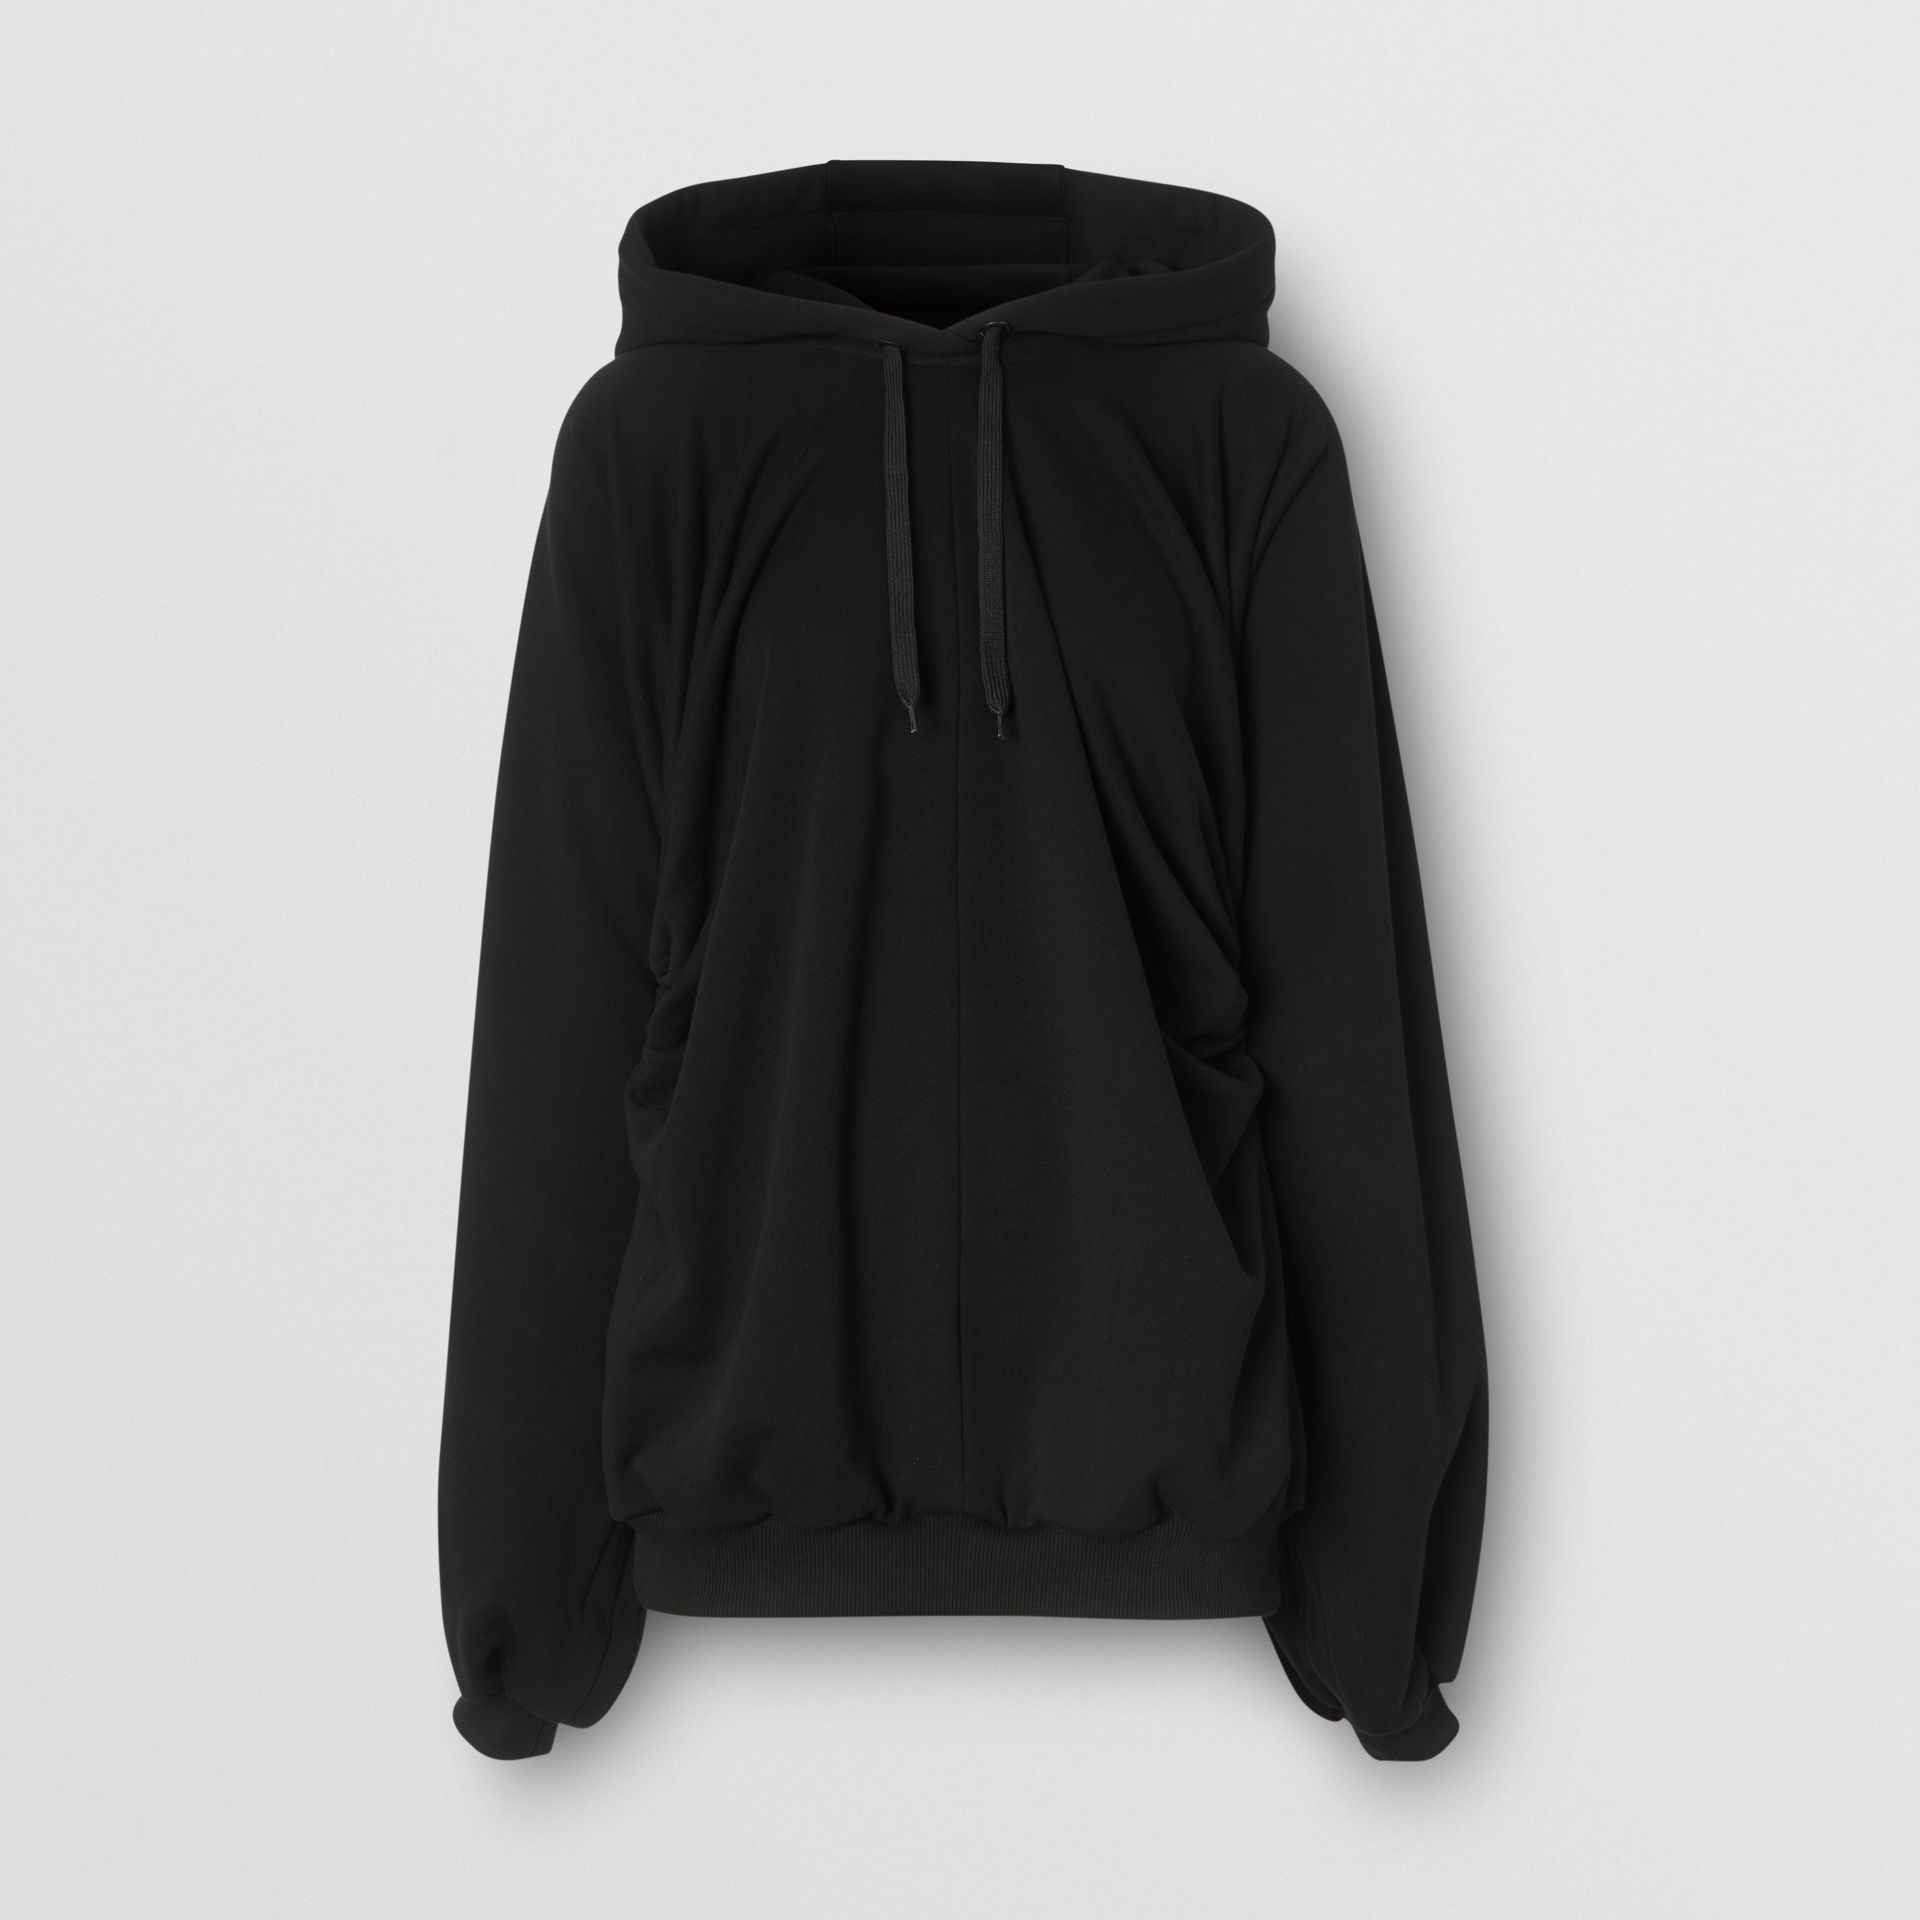 Location Print Gathered Cotton Oversized Hoodie in Black | Burberry United Kingdom - gallery image 3